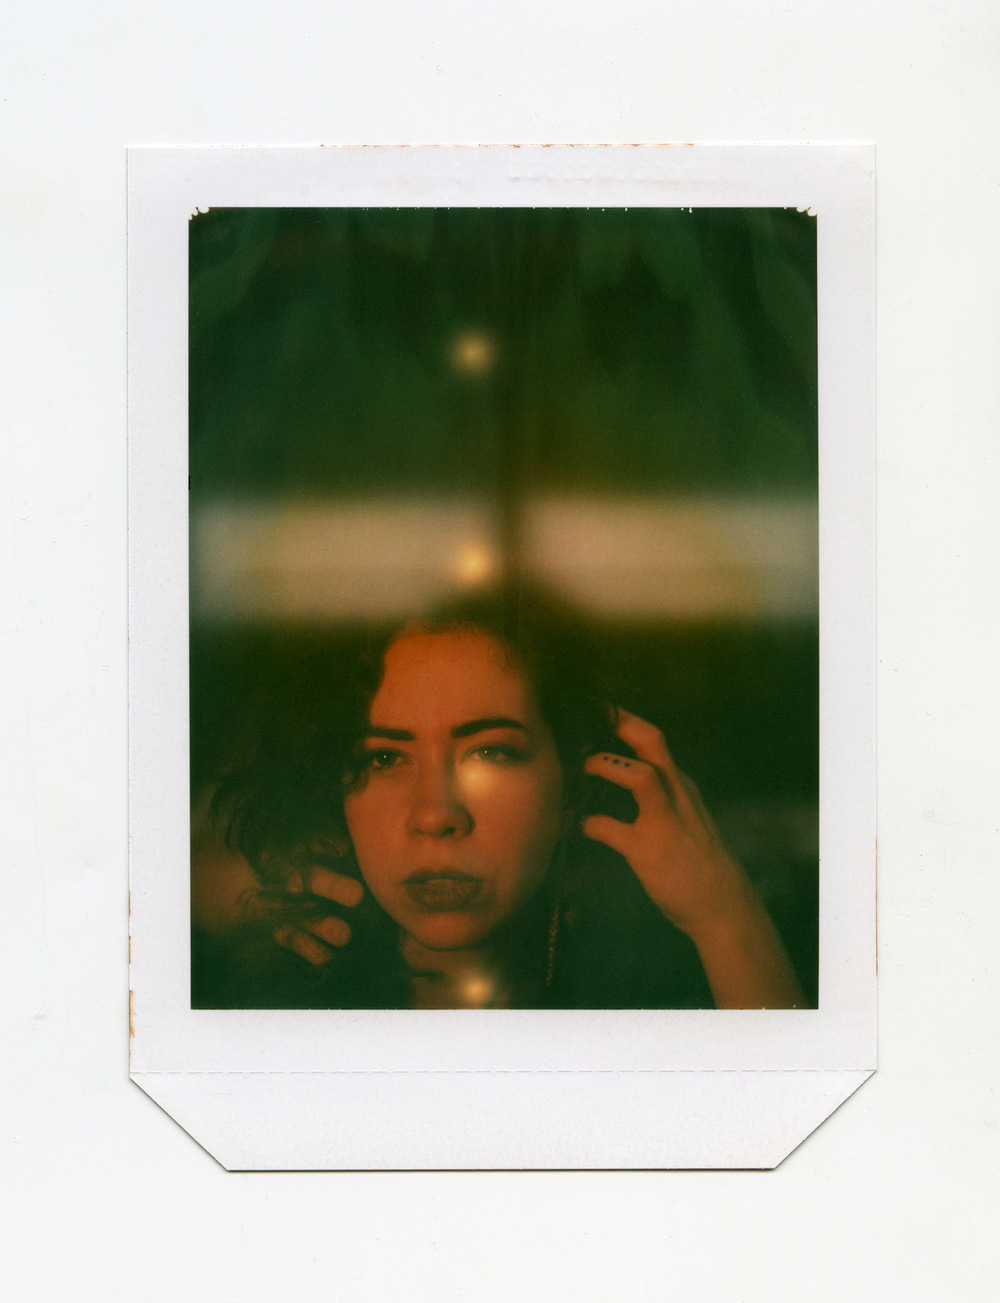 Brian Garbrecht - Dots Expired Polaroid type 58 4x5 instant film. 2018